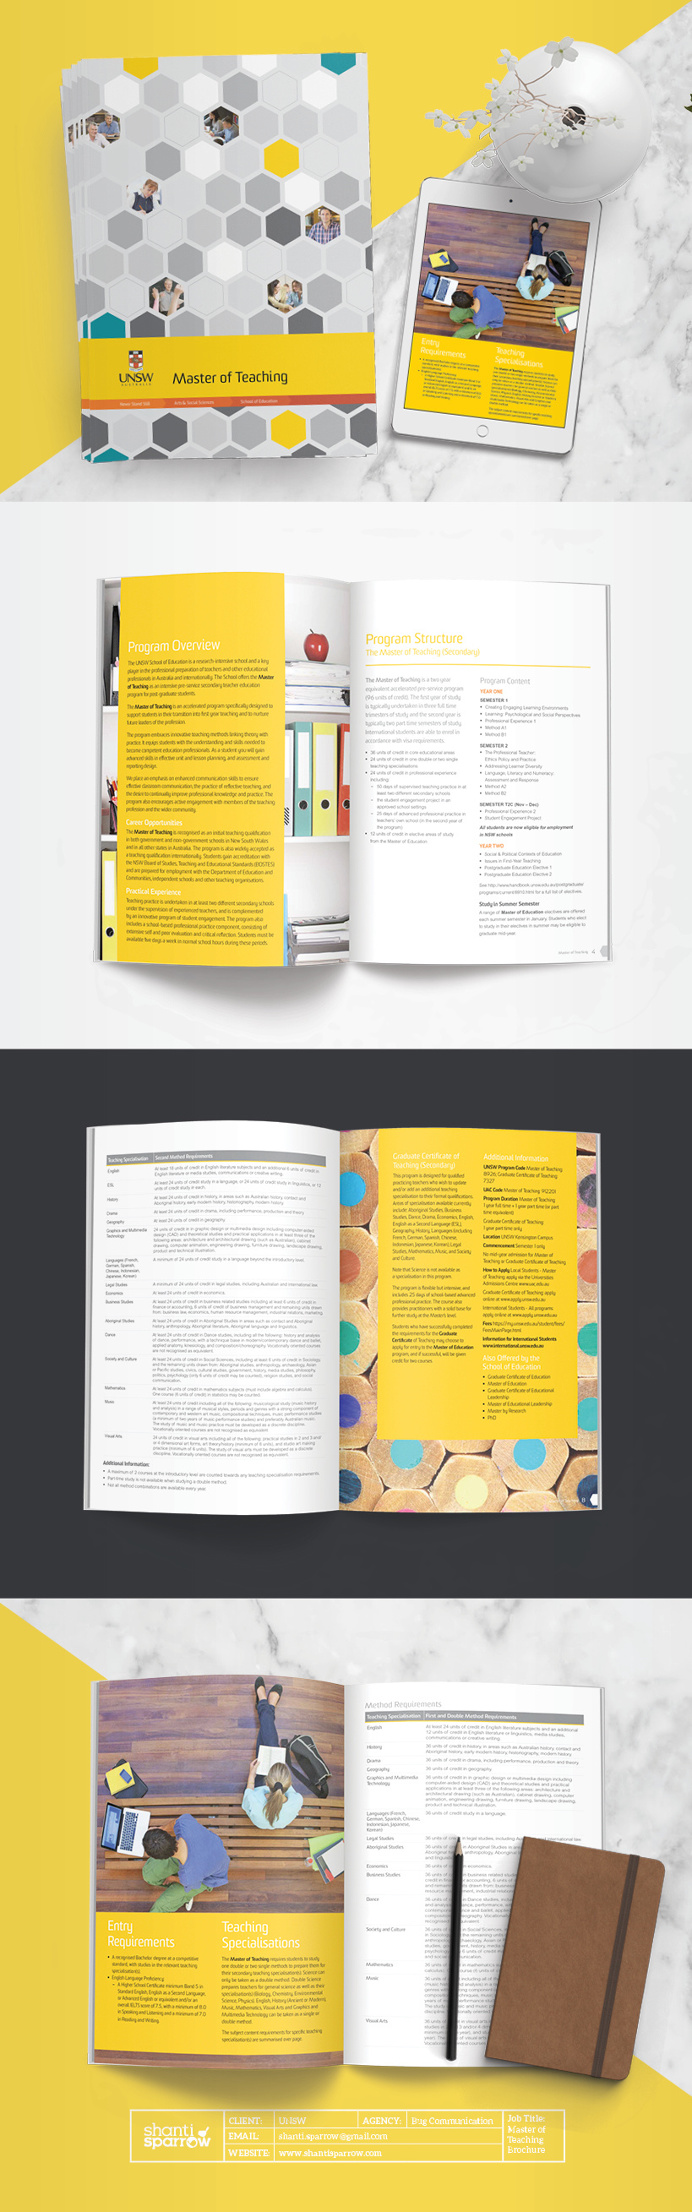 Design by Shanti Sparrow Client: UNSW Project Name: Program Brochure #Design #graphicdesign #layout #magazine #typography #branding #graph